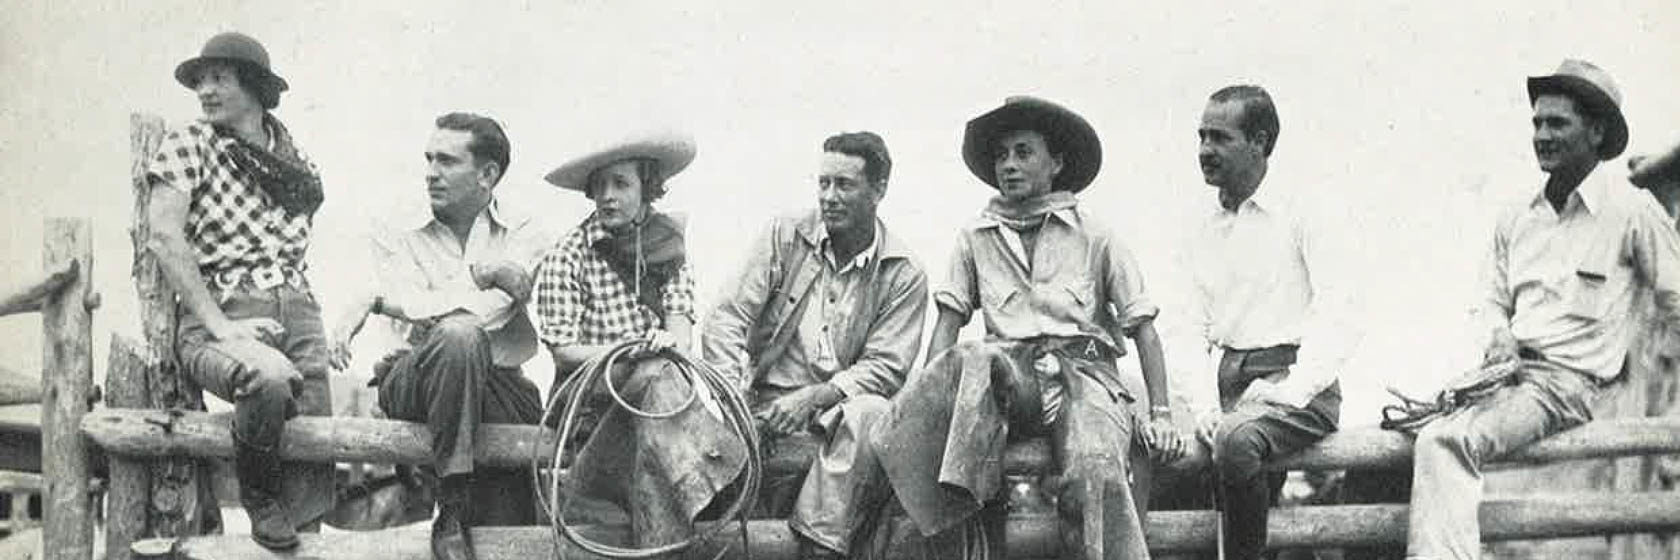 Old photo of guests in cowboy gear sitting on a fence